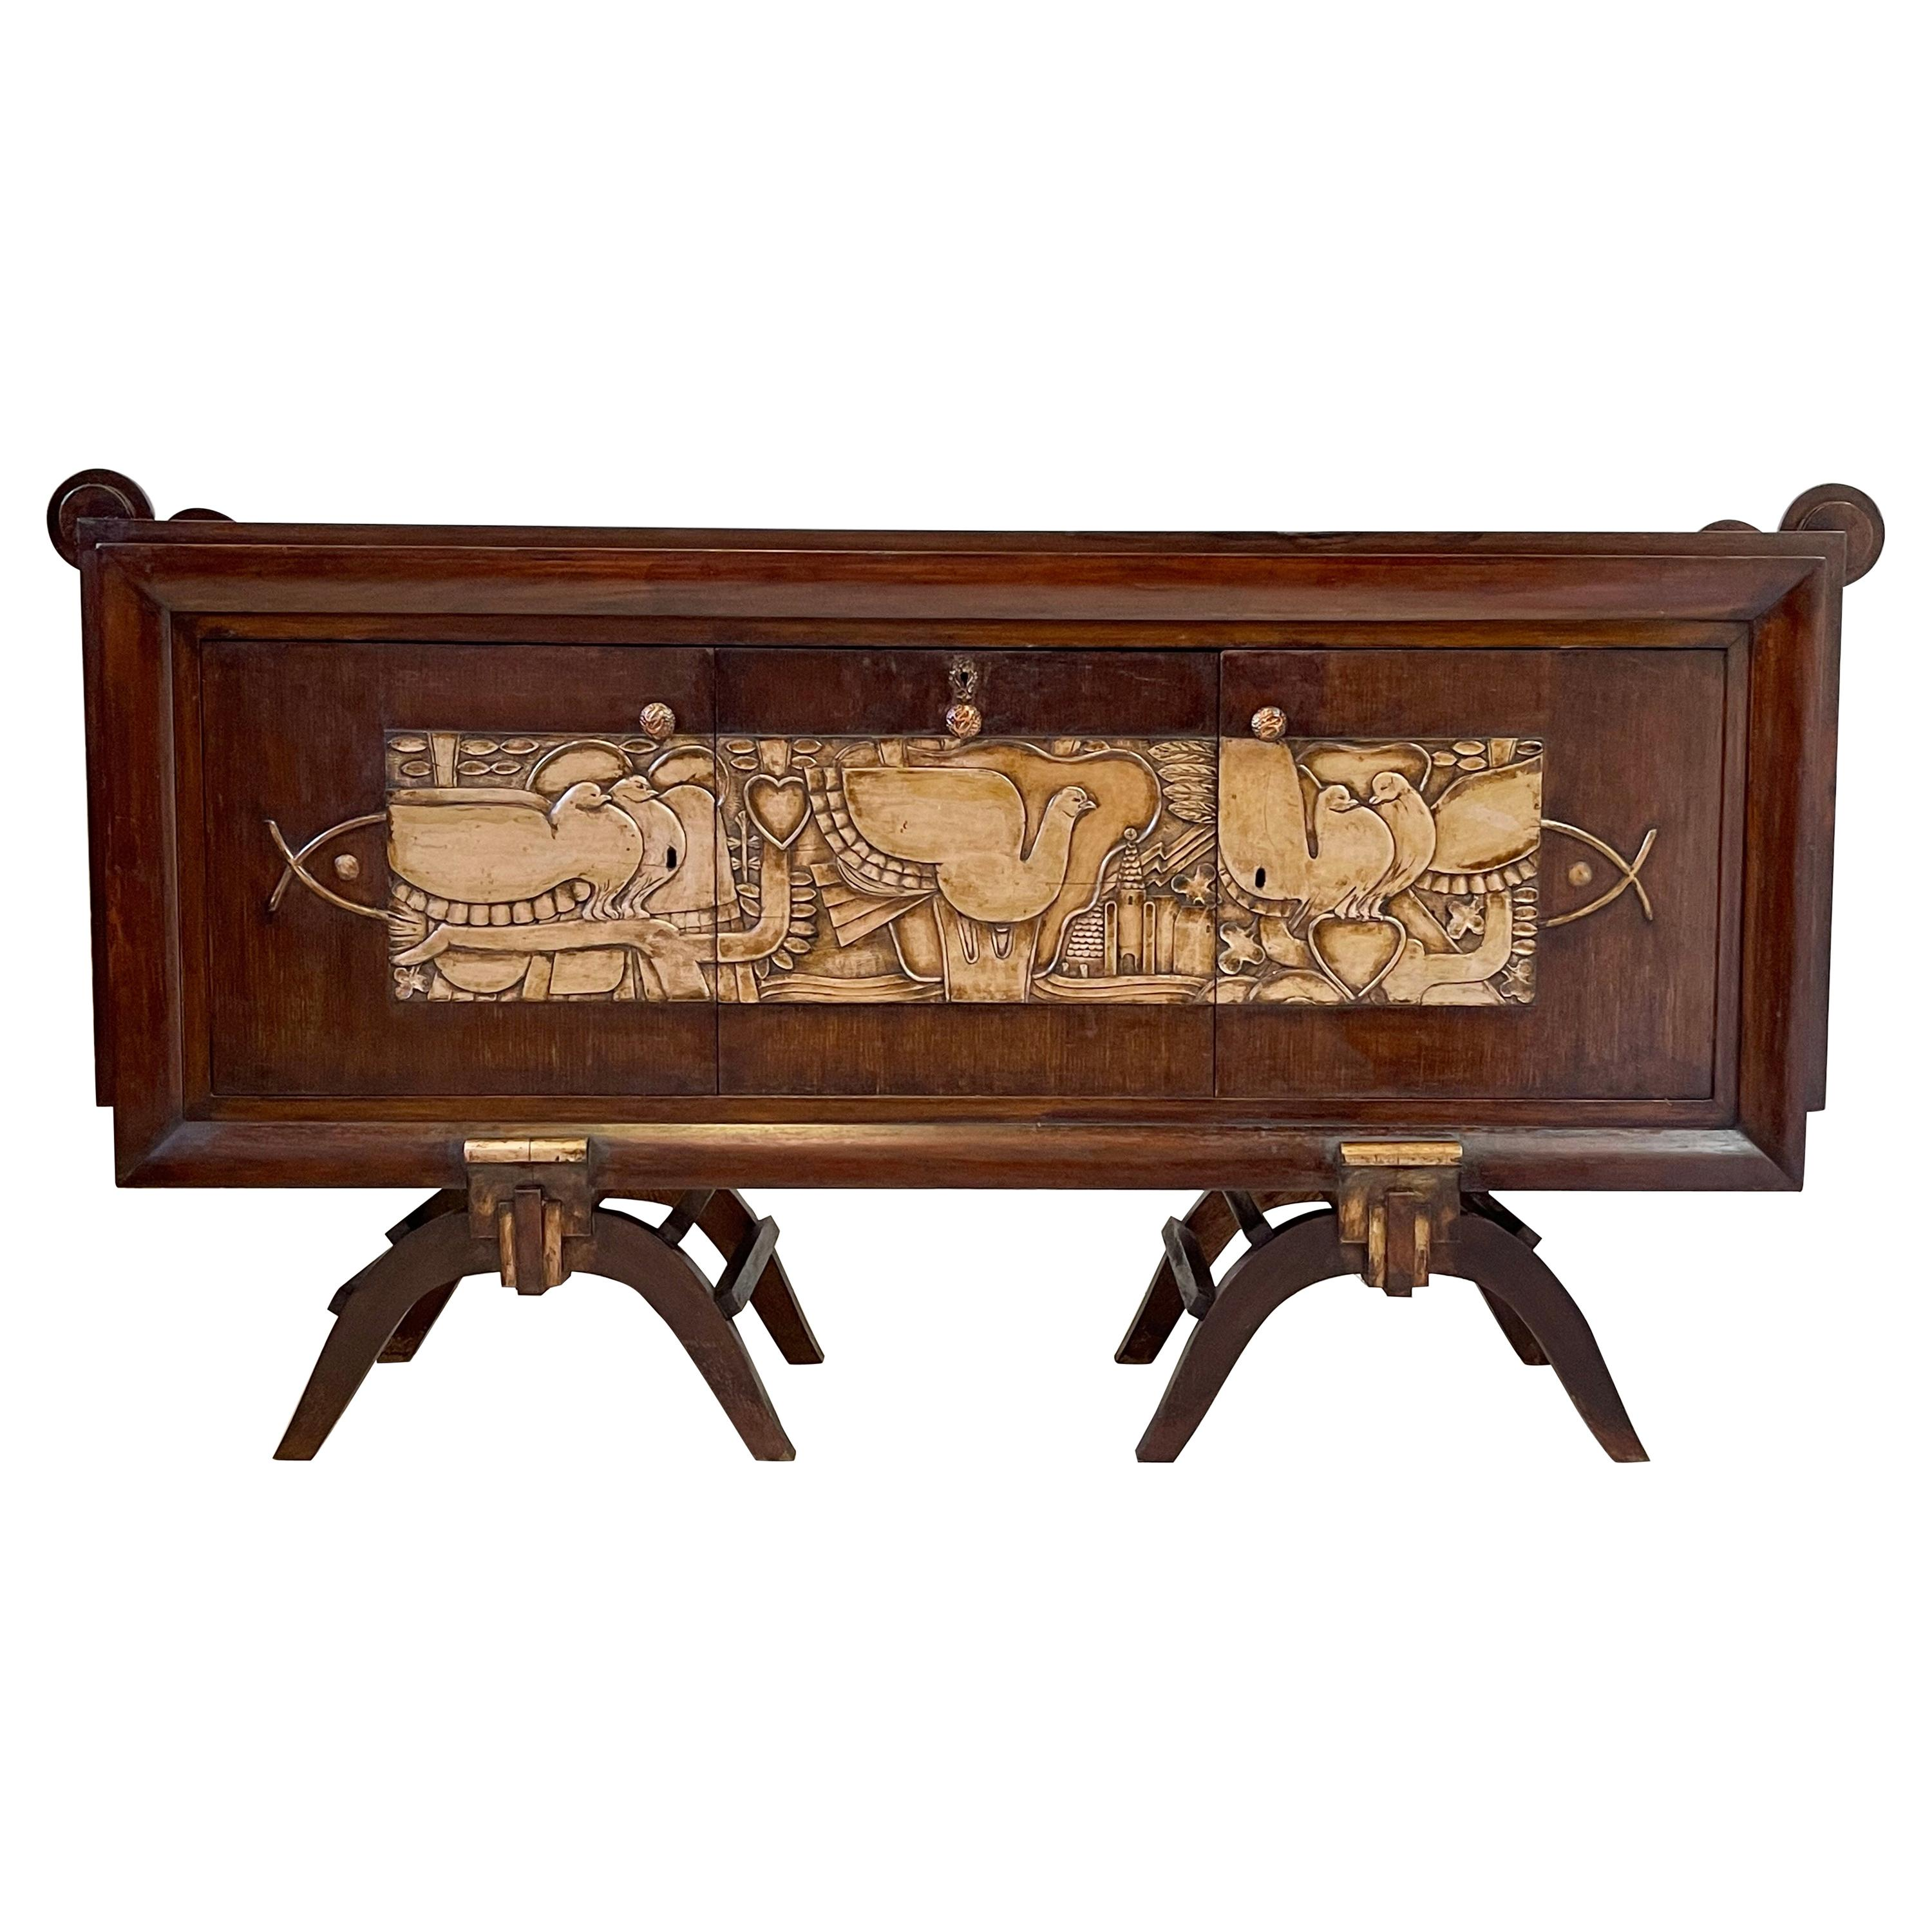 French Art Deco Credenza with Mirrored Dry Bar